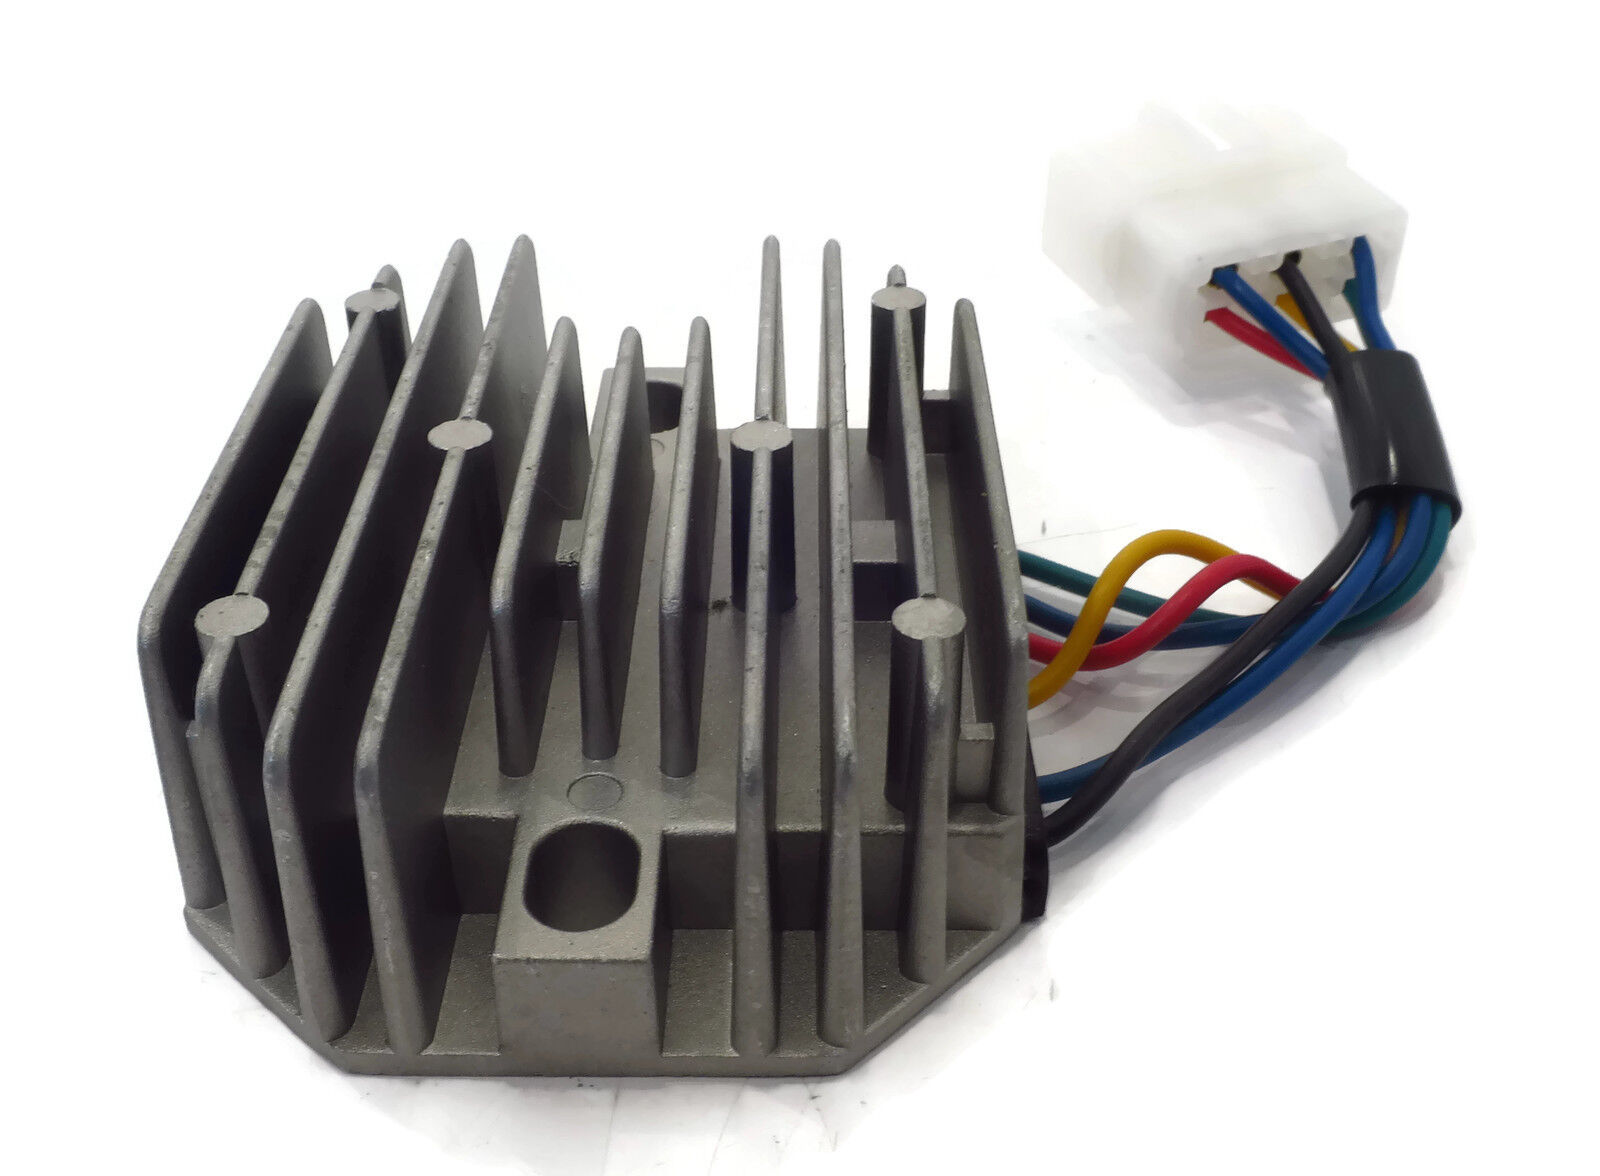 New Voltage Regulator    Rectifier For Kubota  U0026 Grasshopper Rs5101 Rs5155 6 Wire